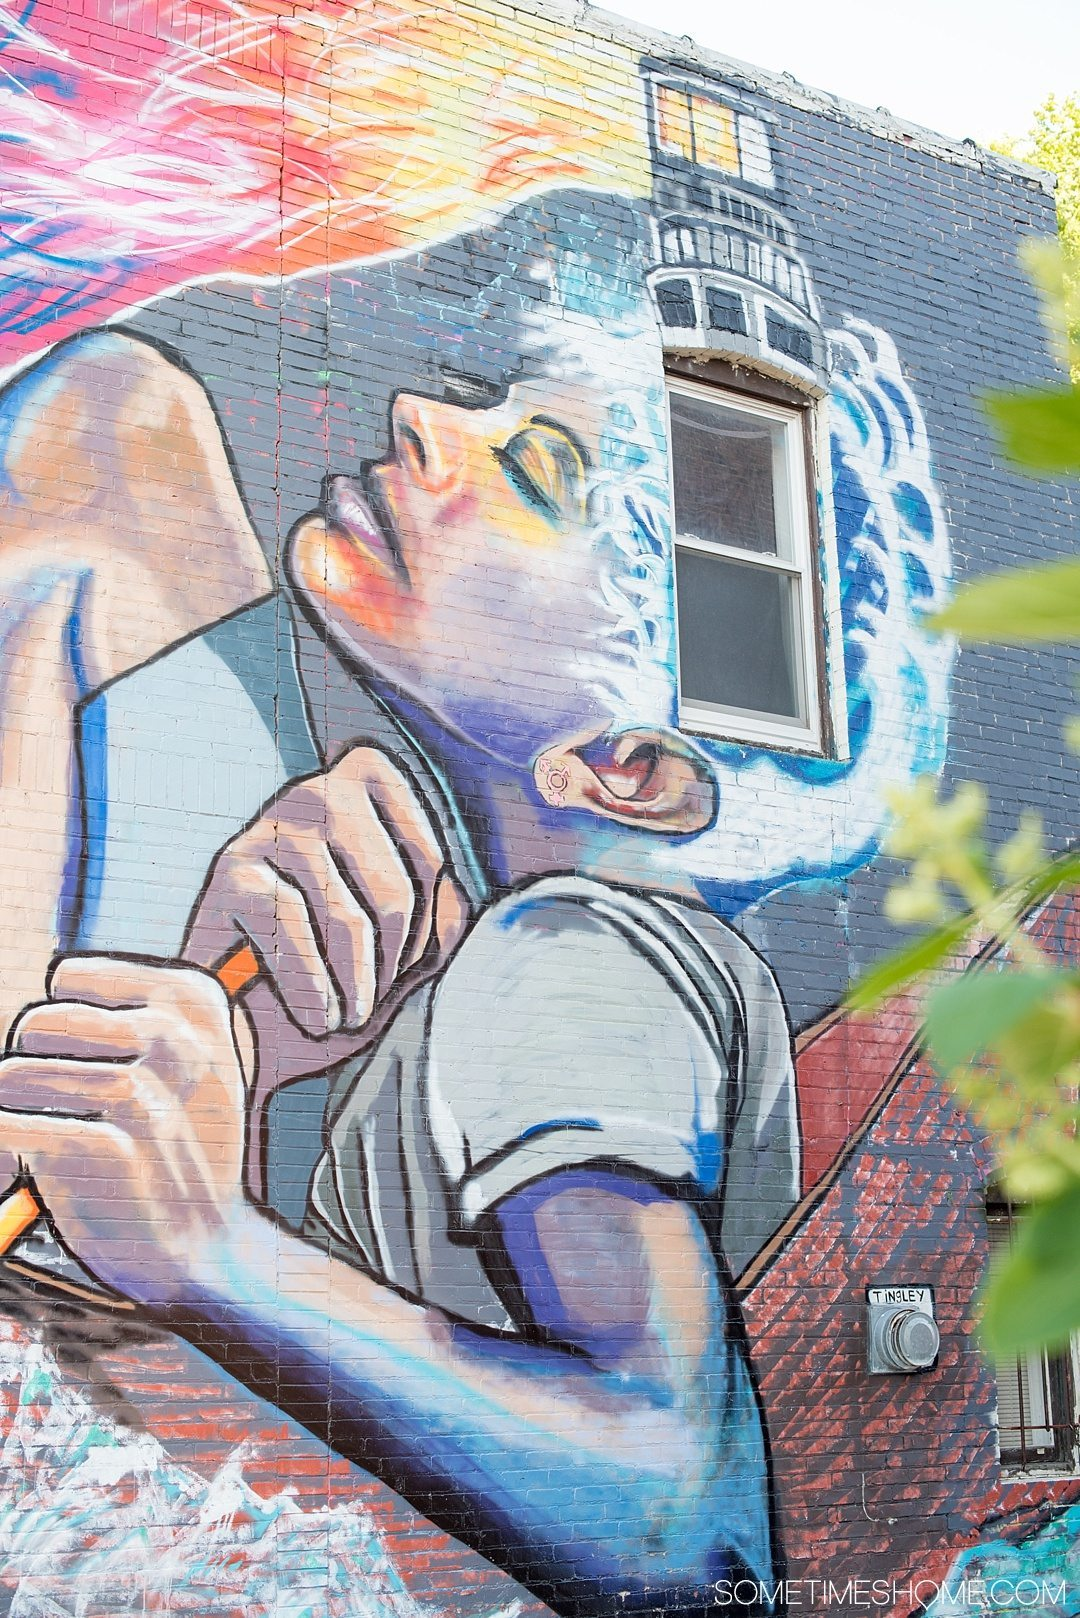 Why a Trip to Buffalo Had Me in Disbelief on Sometimes Home travel blog. Photo of colorful mural in the city's downtown area of Allentown.